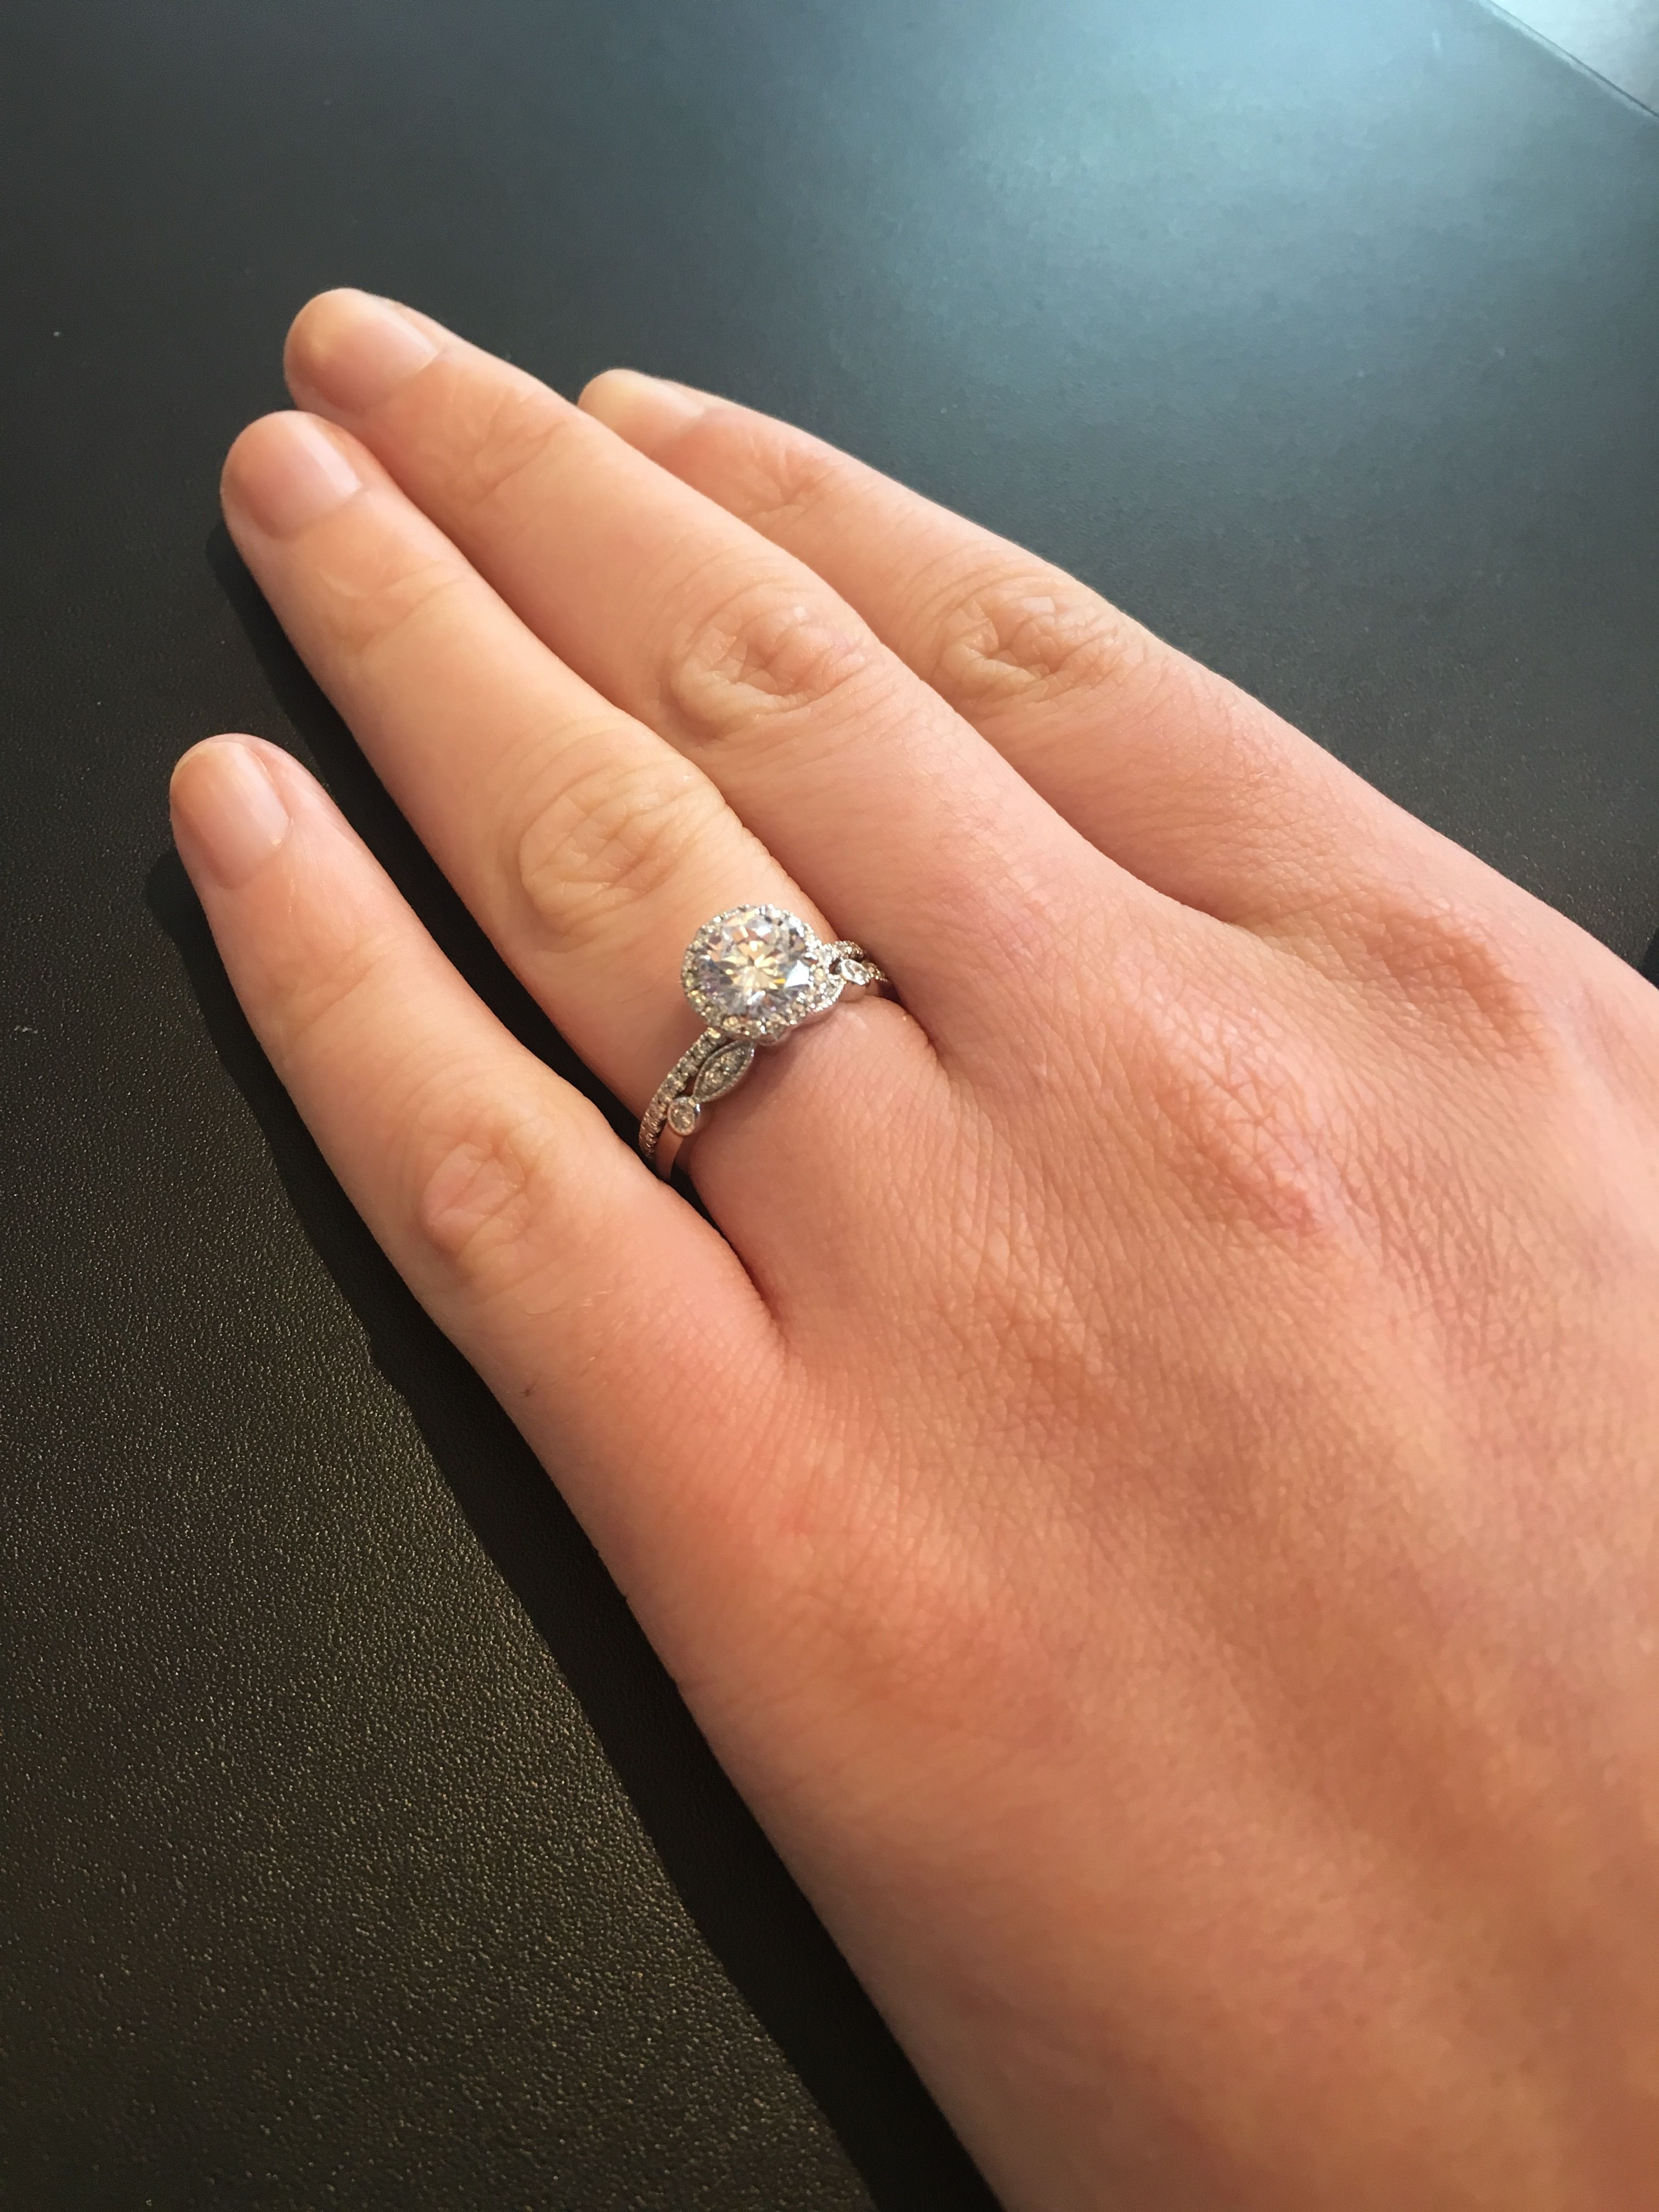 brilliant earth wedding bands Brilliant earth Waverly Engagement ring with the Tiara wedding band